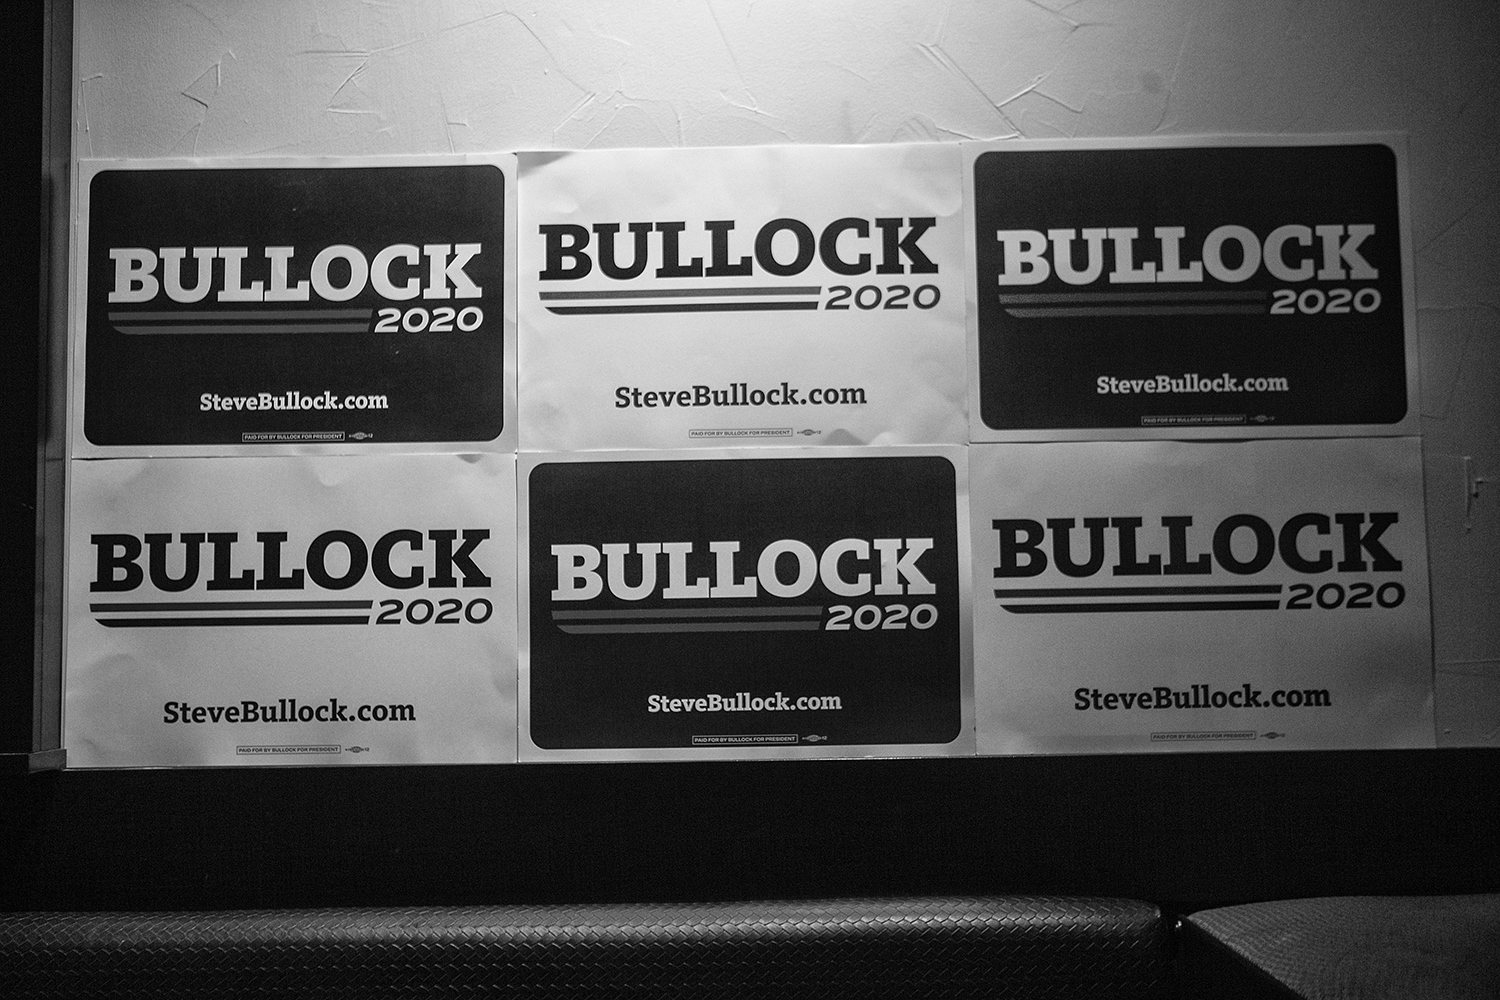 Signs+for+the+Governor+of+Montana+Steve+Bullock+hang+during+his+meet+and+greet+in+Blackstone+on+July+10%2C+2019.+